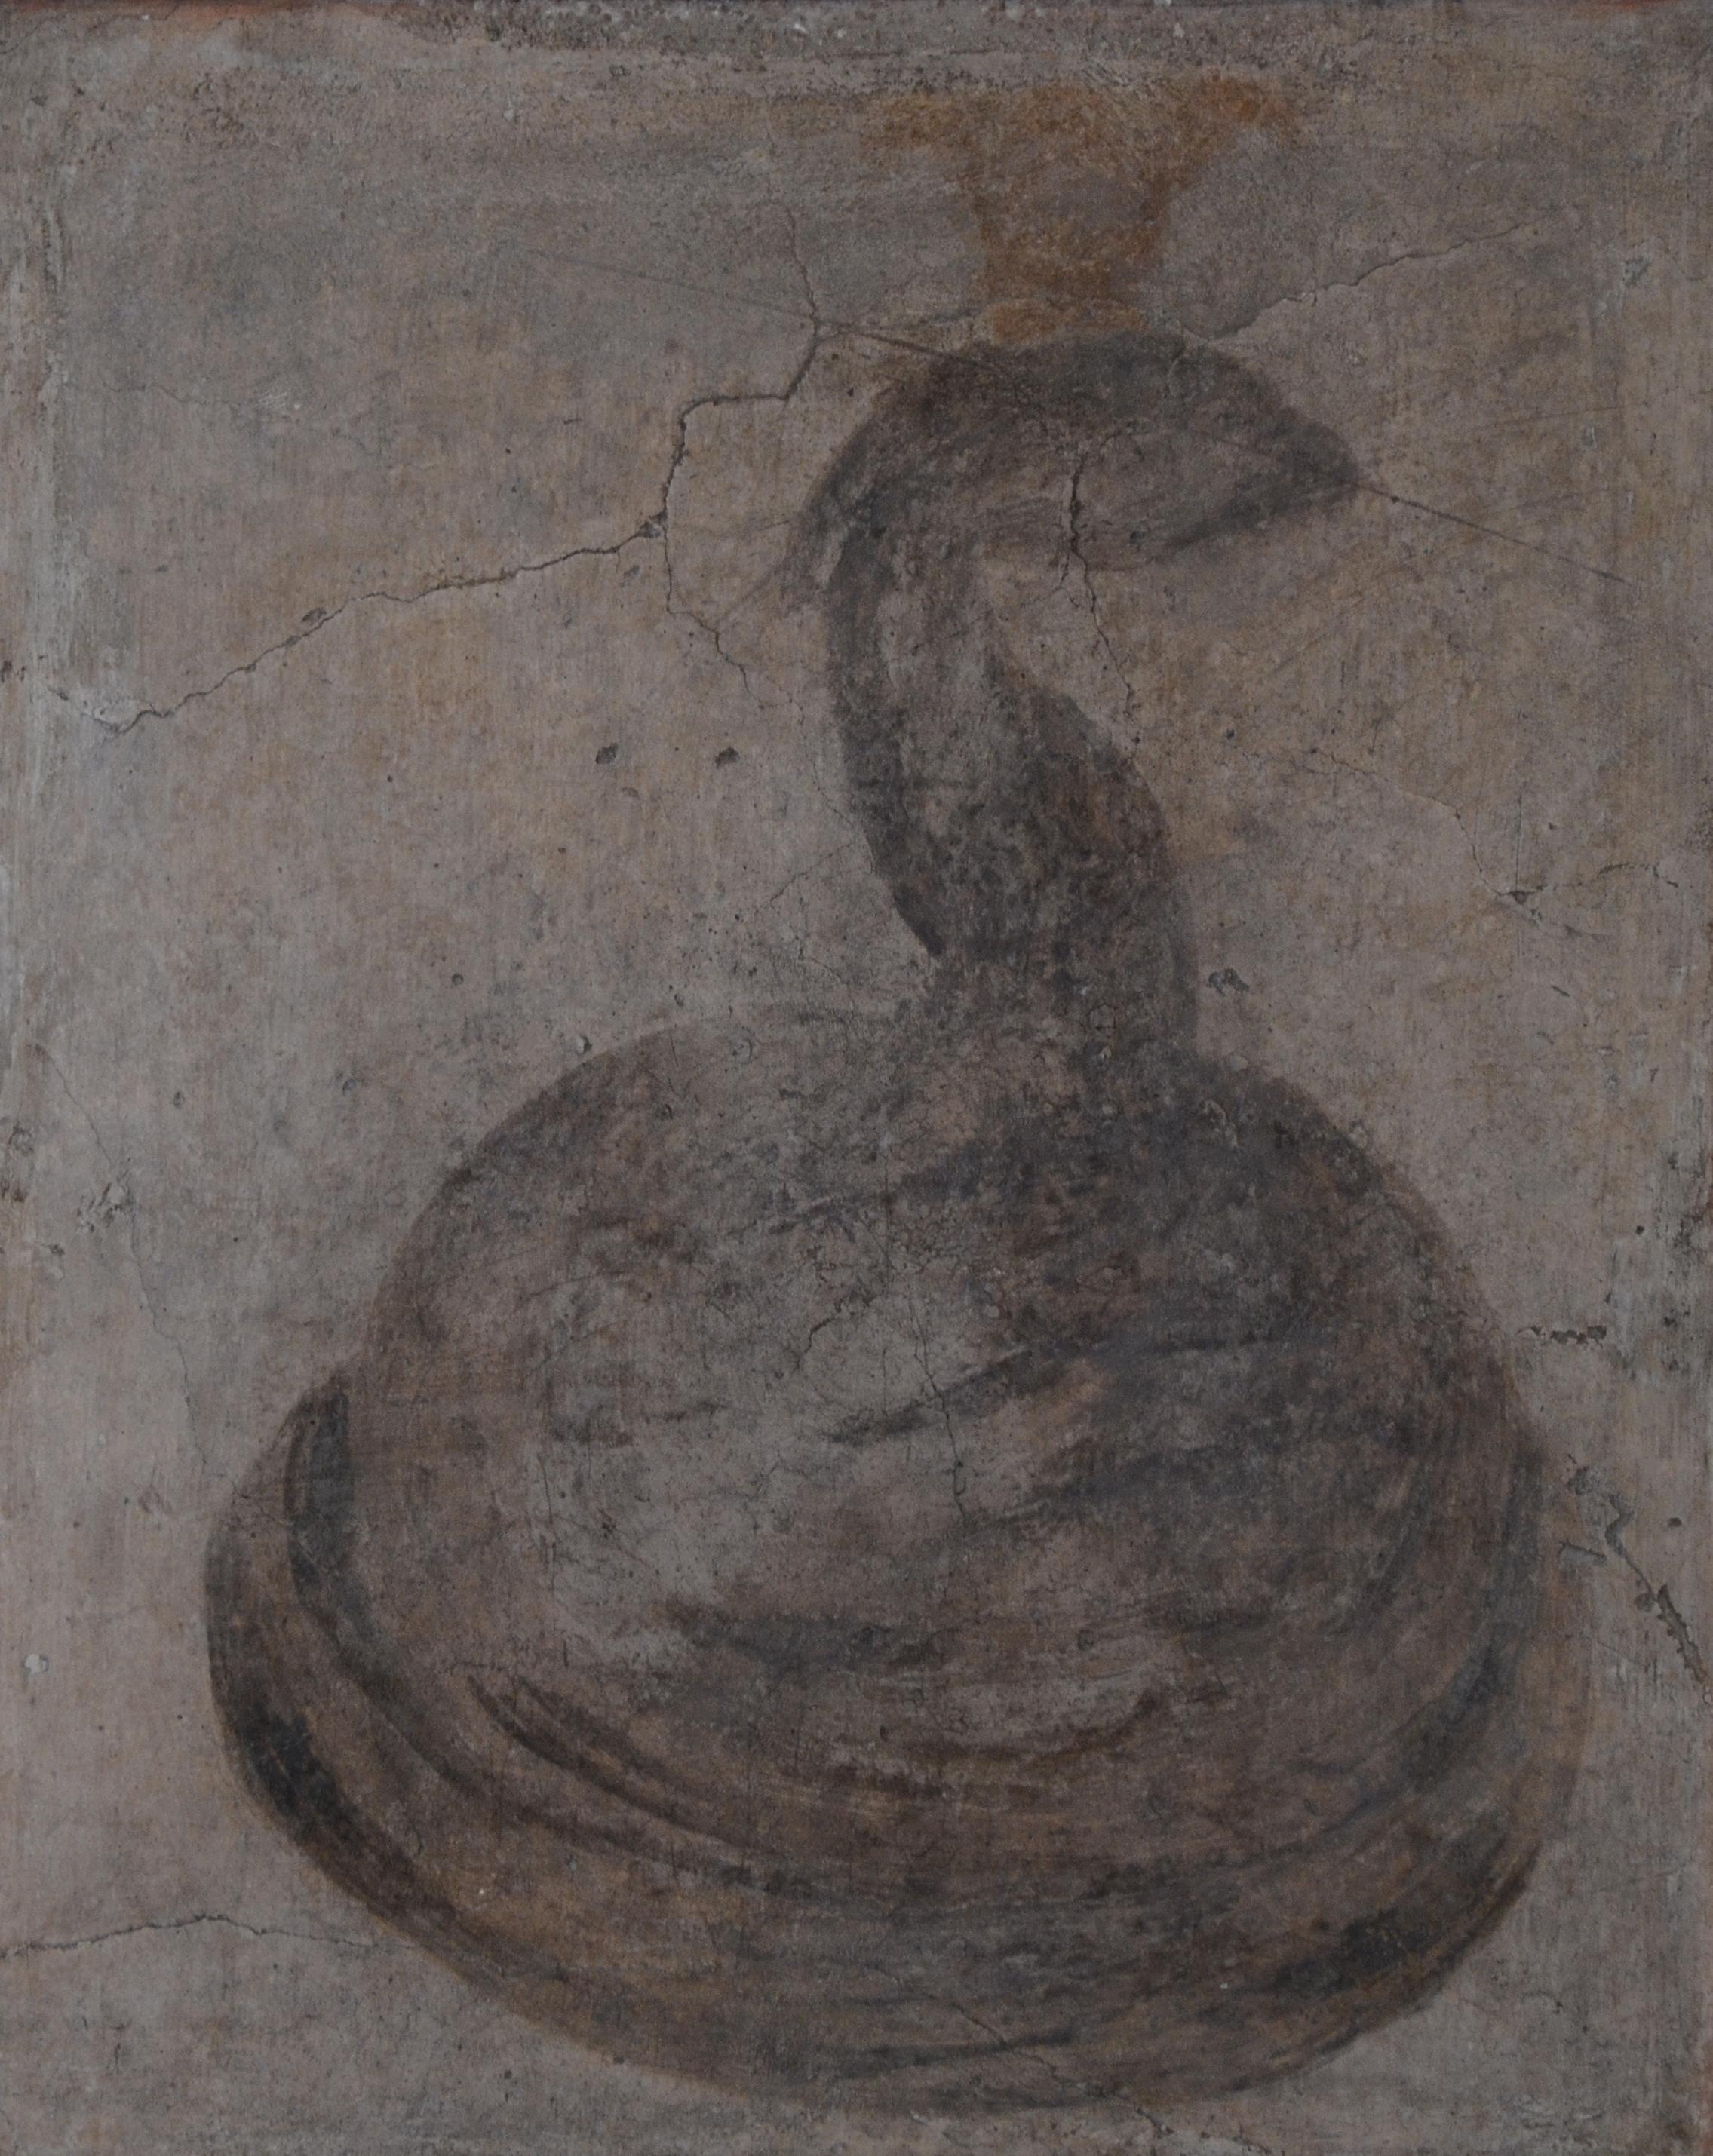 Filefresco From The Temple Of Isis In Pompeii Depicting A Cobra